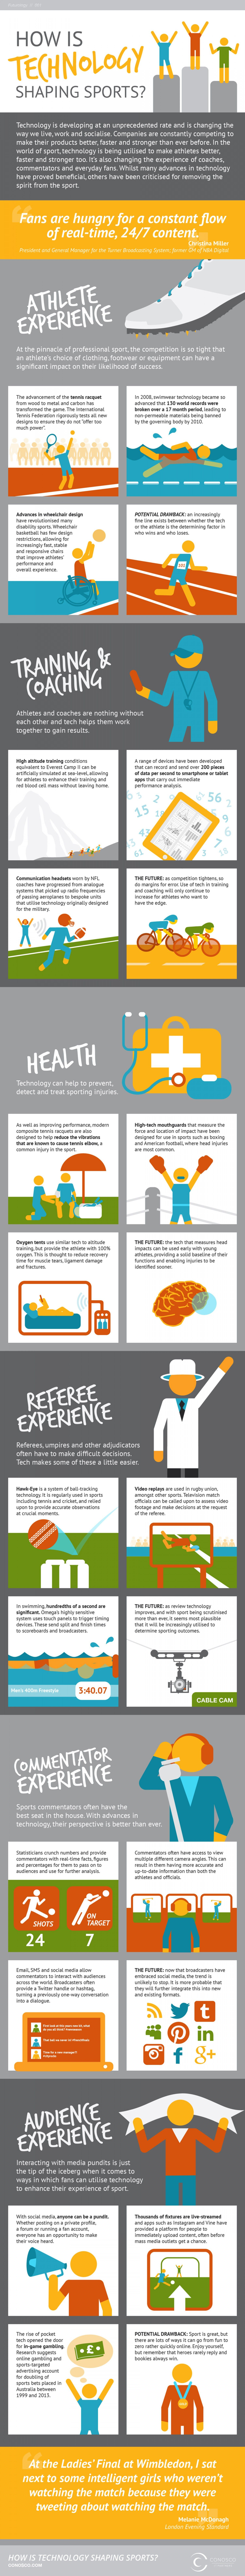 How Is Technology Shaping Sports Infographic Technology Technology Integration Sports